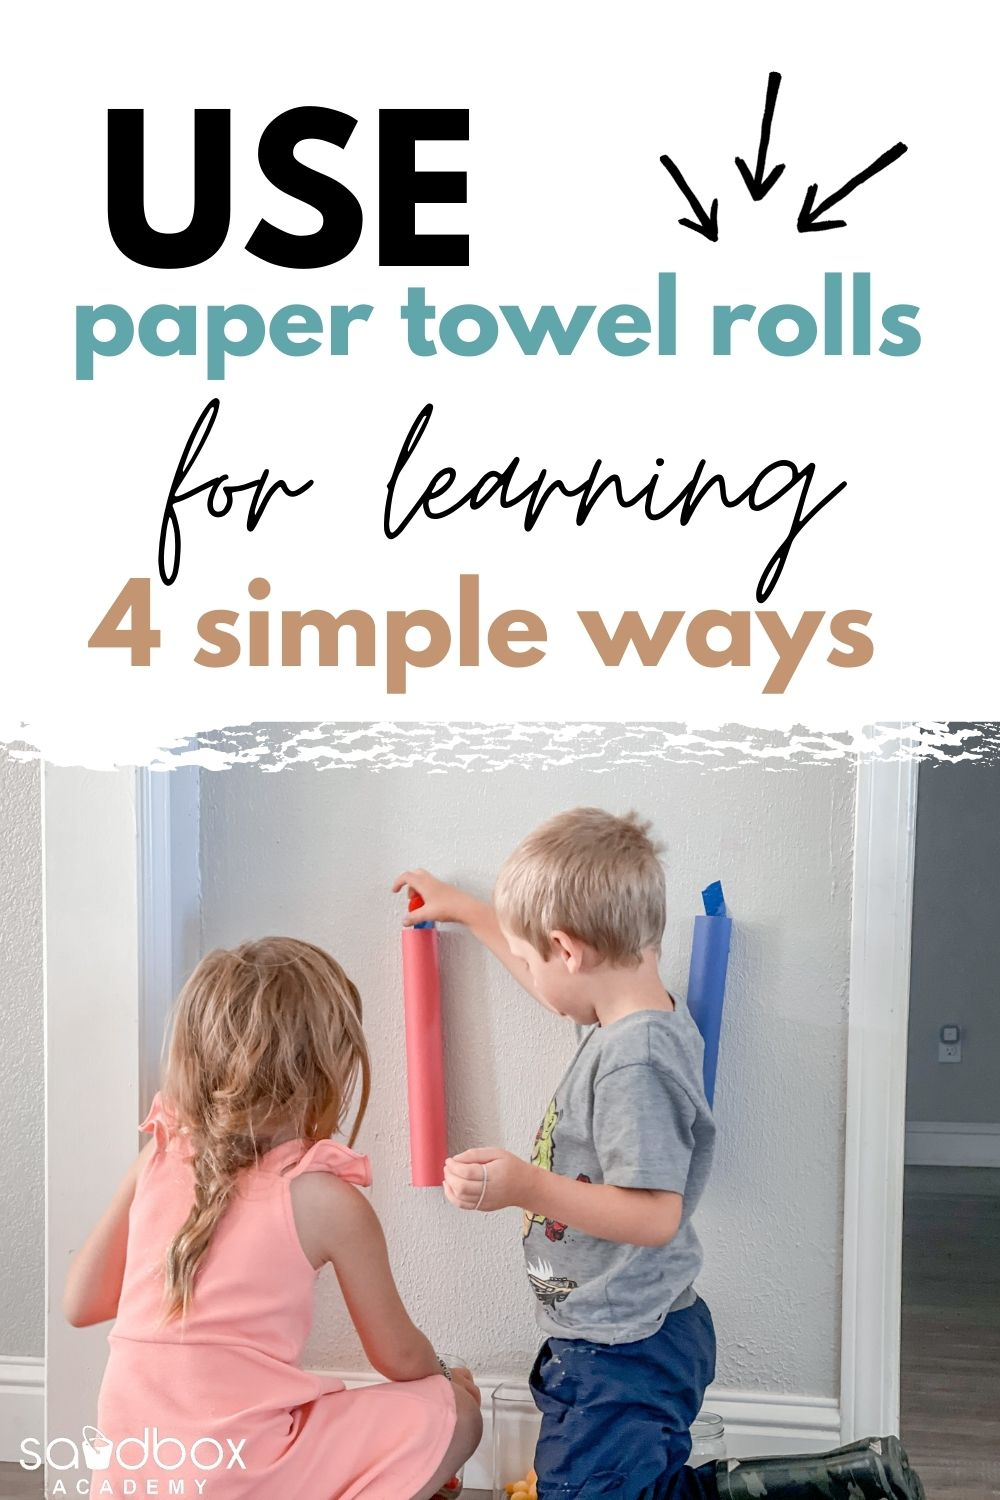 preschoolers playing with paper towel roll activity text reads use paper towel tolls for learning 4 simple ways